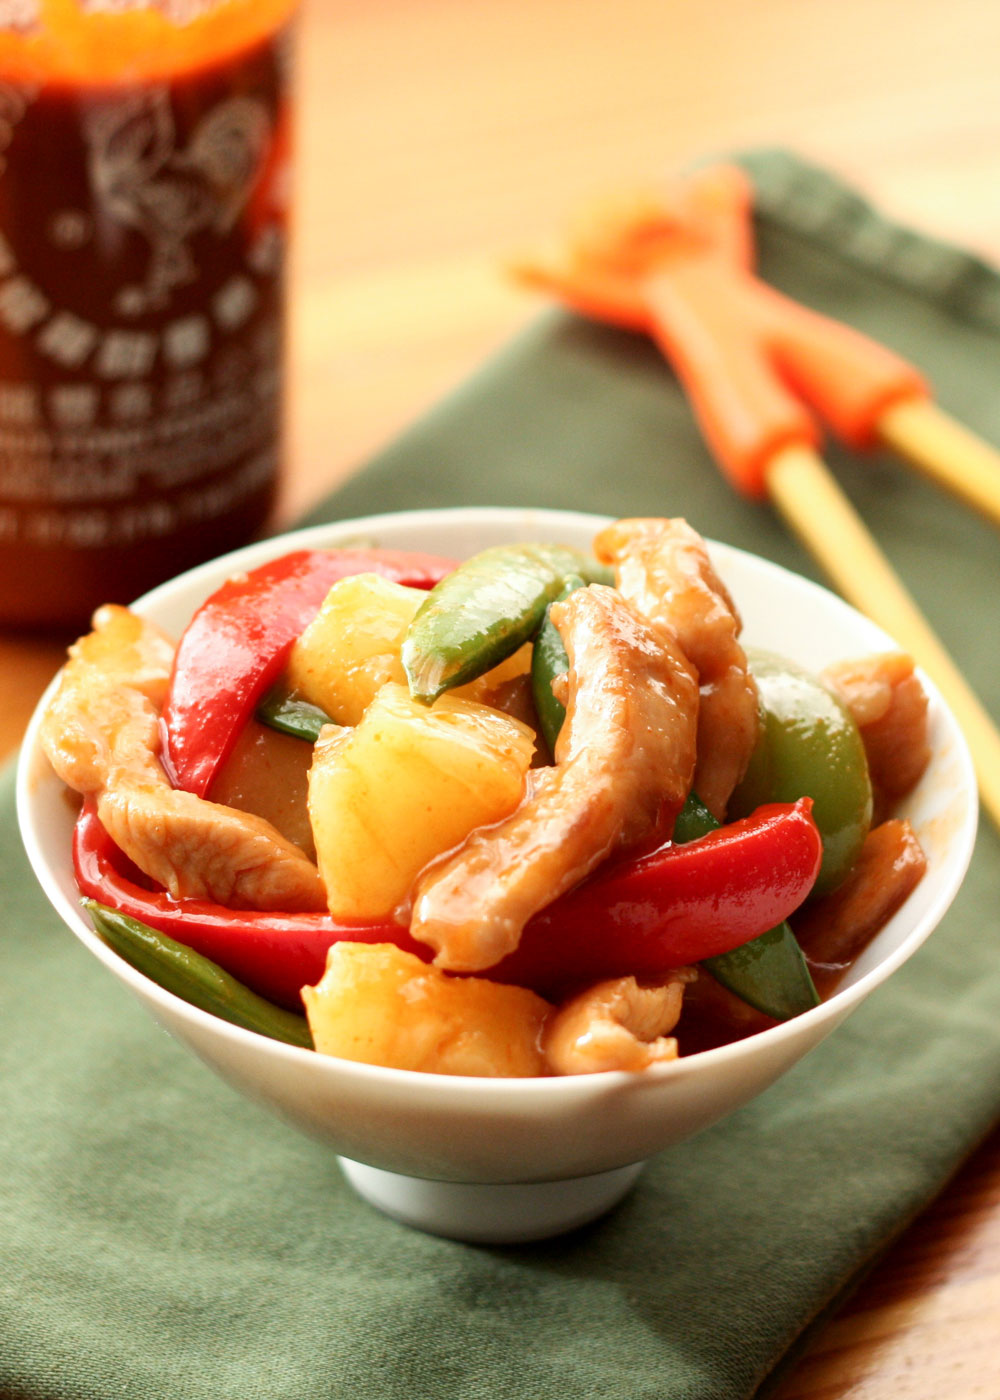 Sweet and Sour Chicken Stir-Fry is ready to eat in 30 minutes or less! - get the recipe at barefeetinthekitchen.com